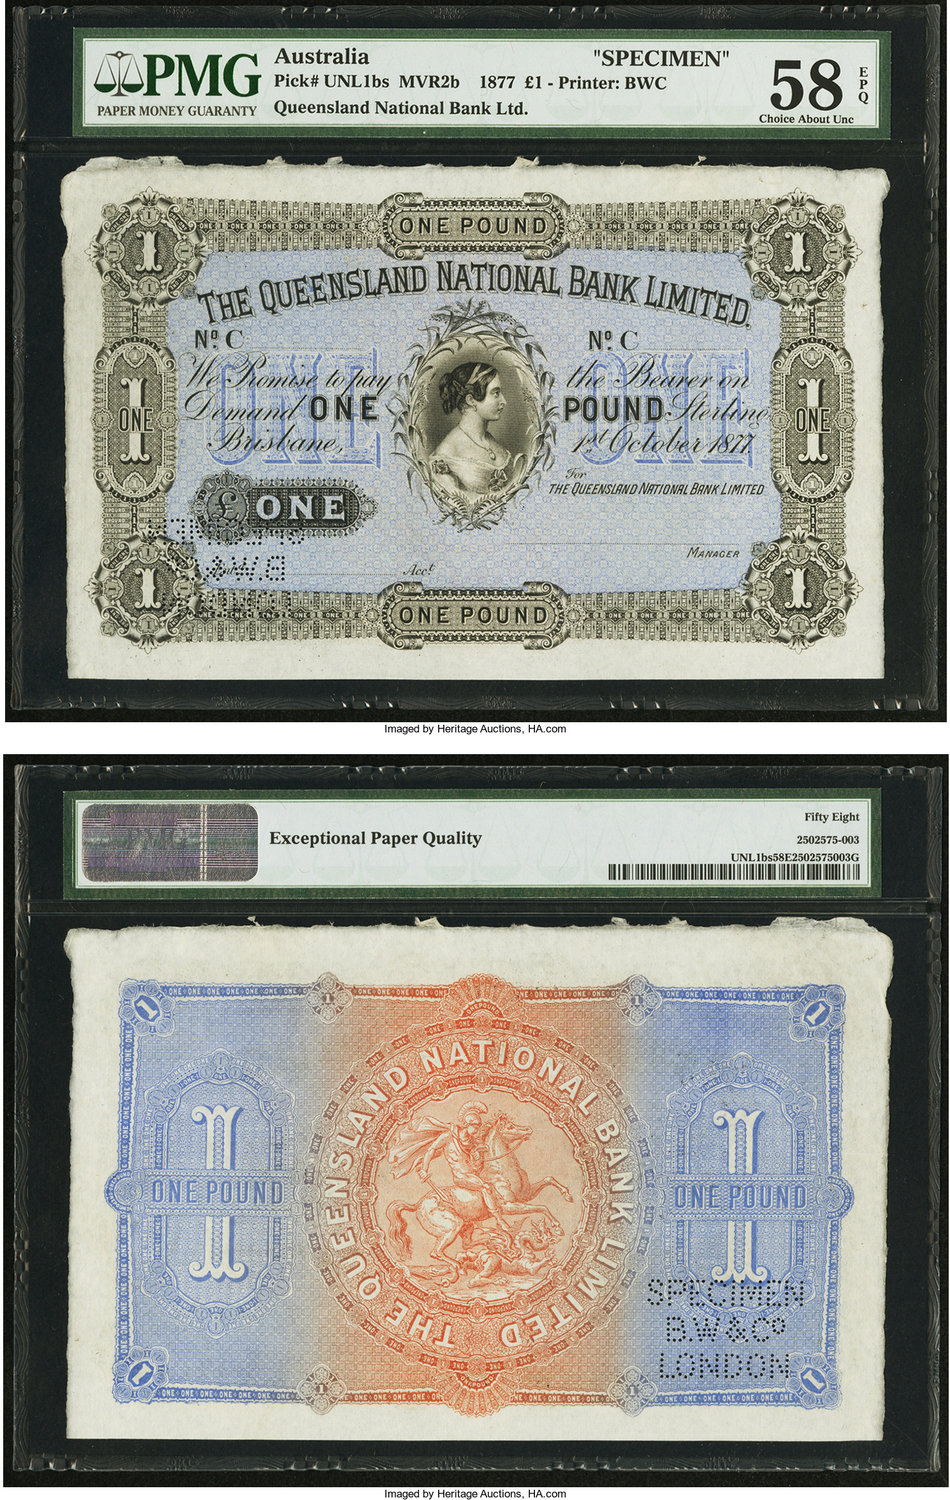 World Currency Australia Queensland National Bank Limited 1 10 1877 Renniks Mvr2b Specimen Was Home To